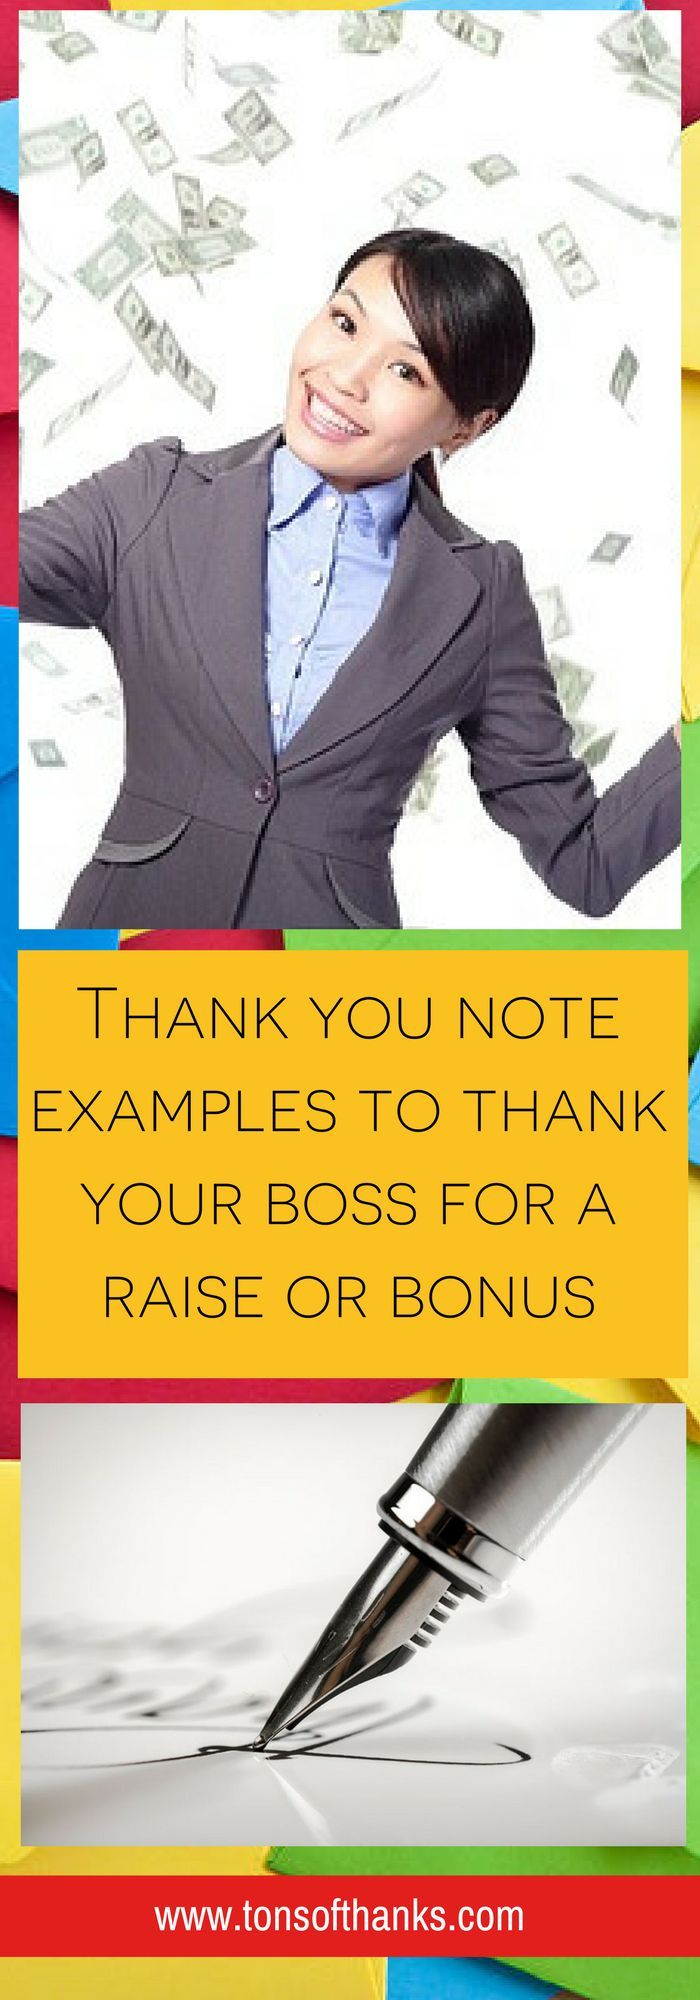 35 Thank you note to boss for raise or bonus examples with